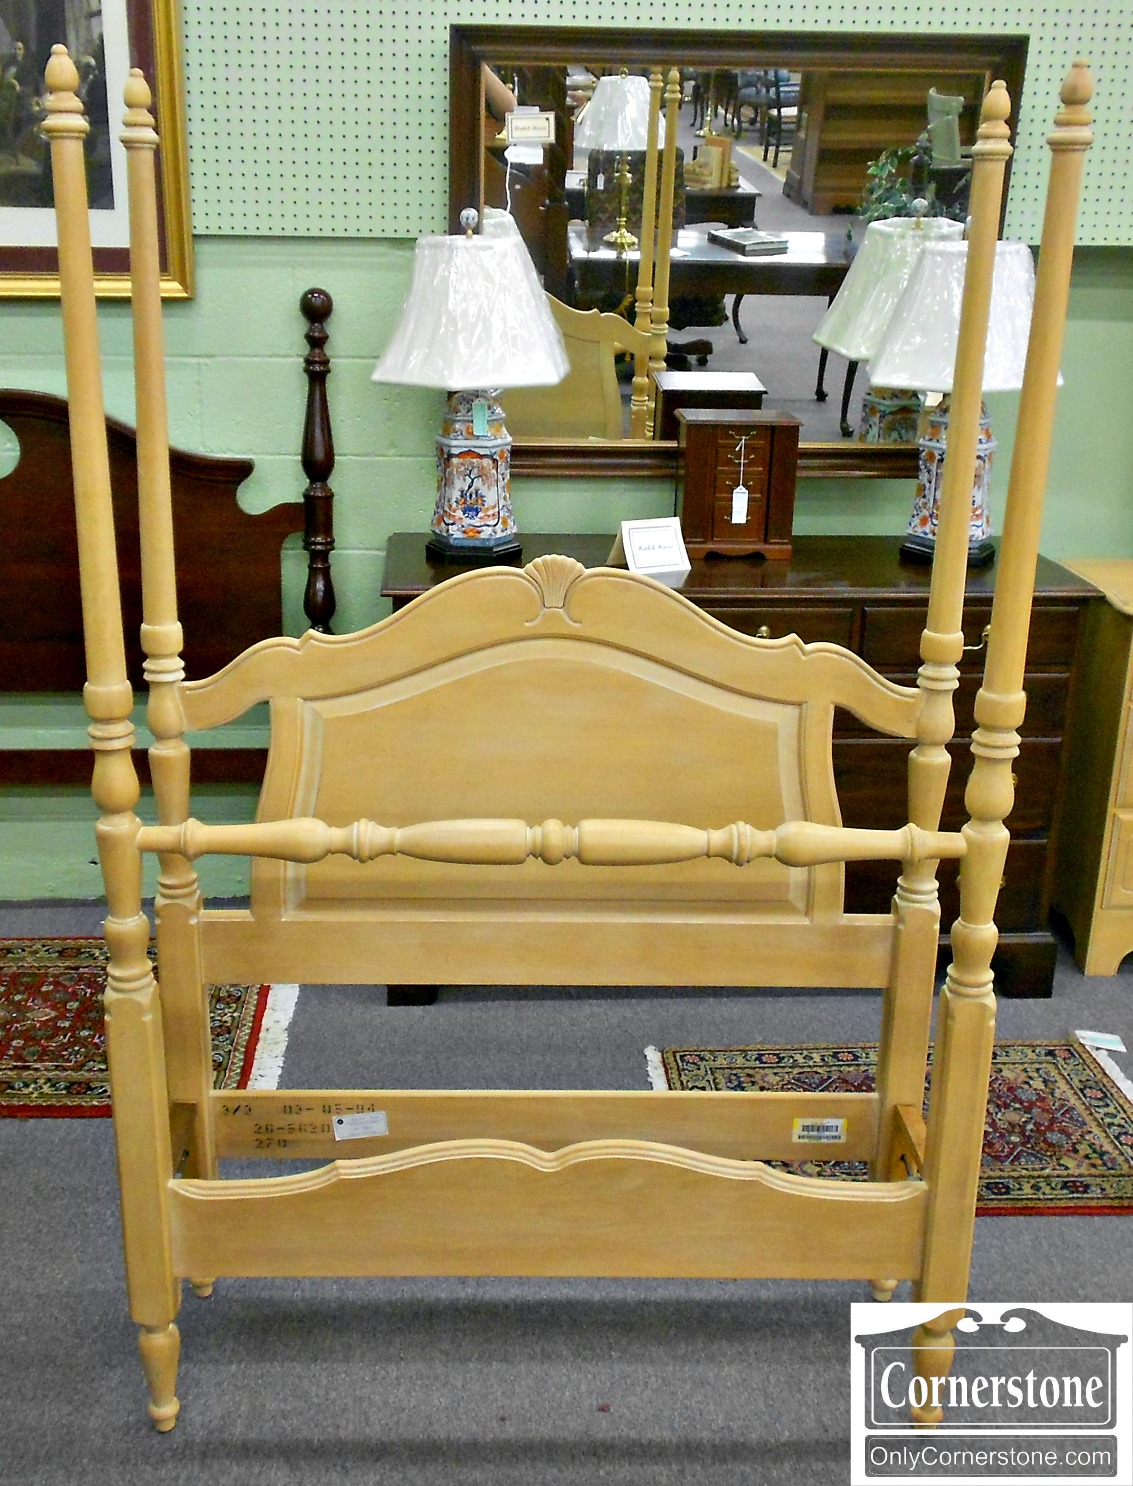 5670-857 Ethan Allen Country French White Washed Maple Twin Poster Bed